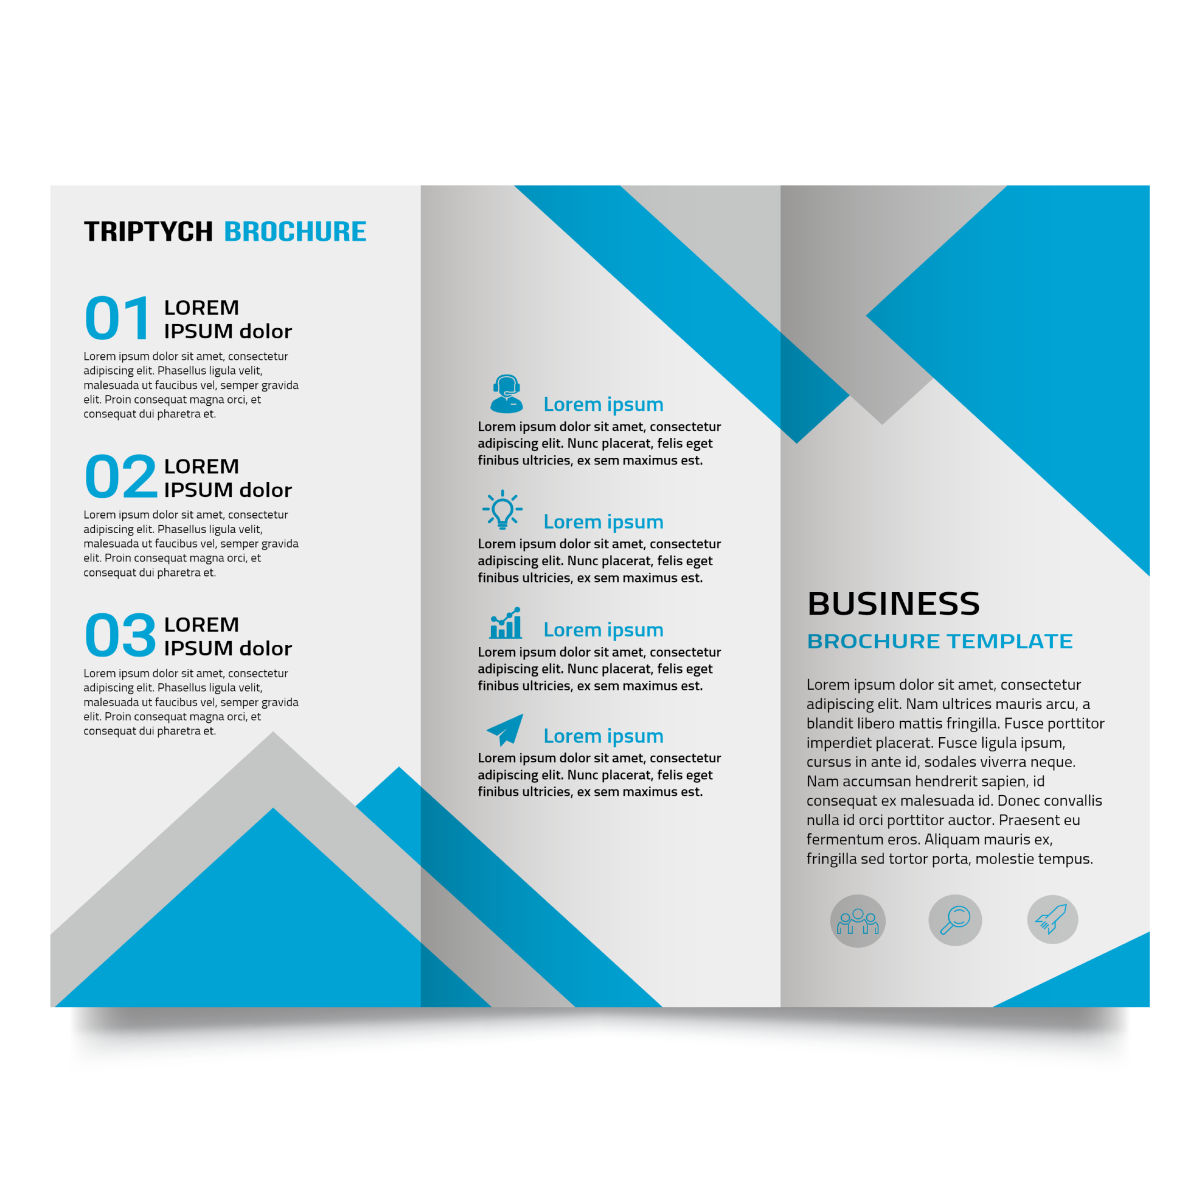 triptych-brochure.png